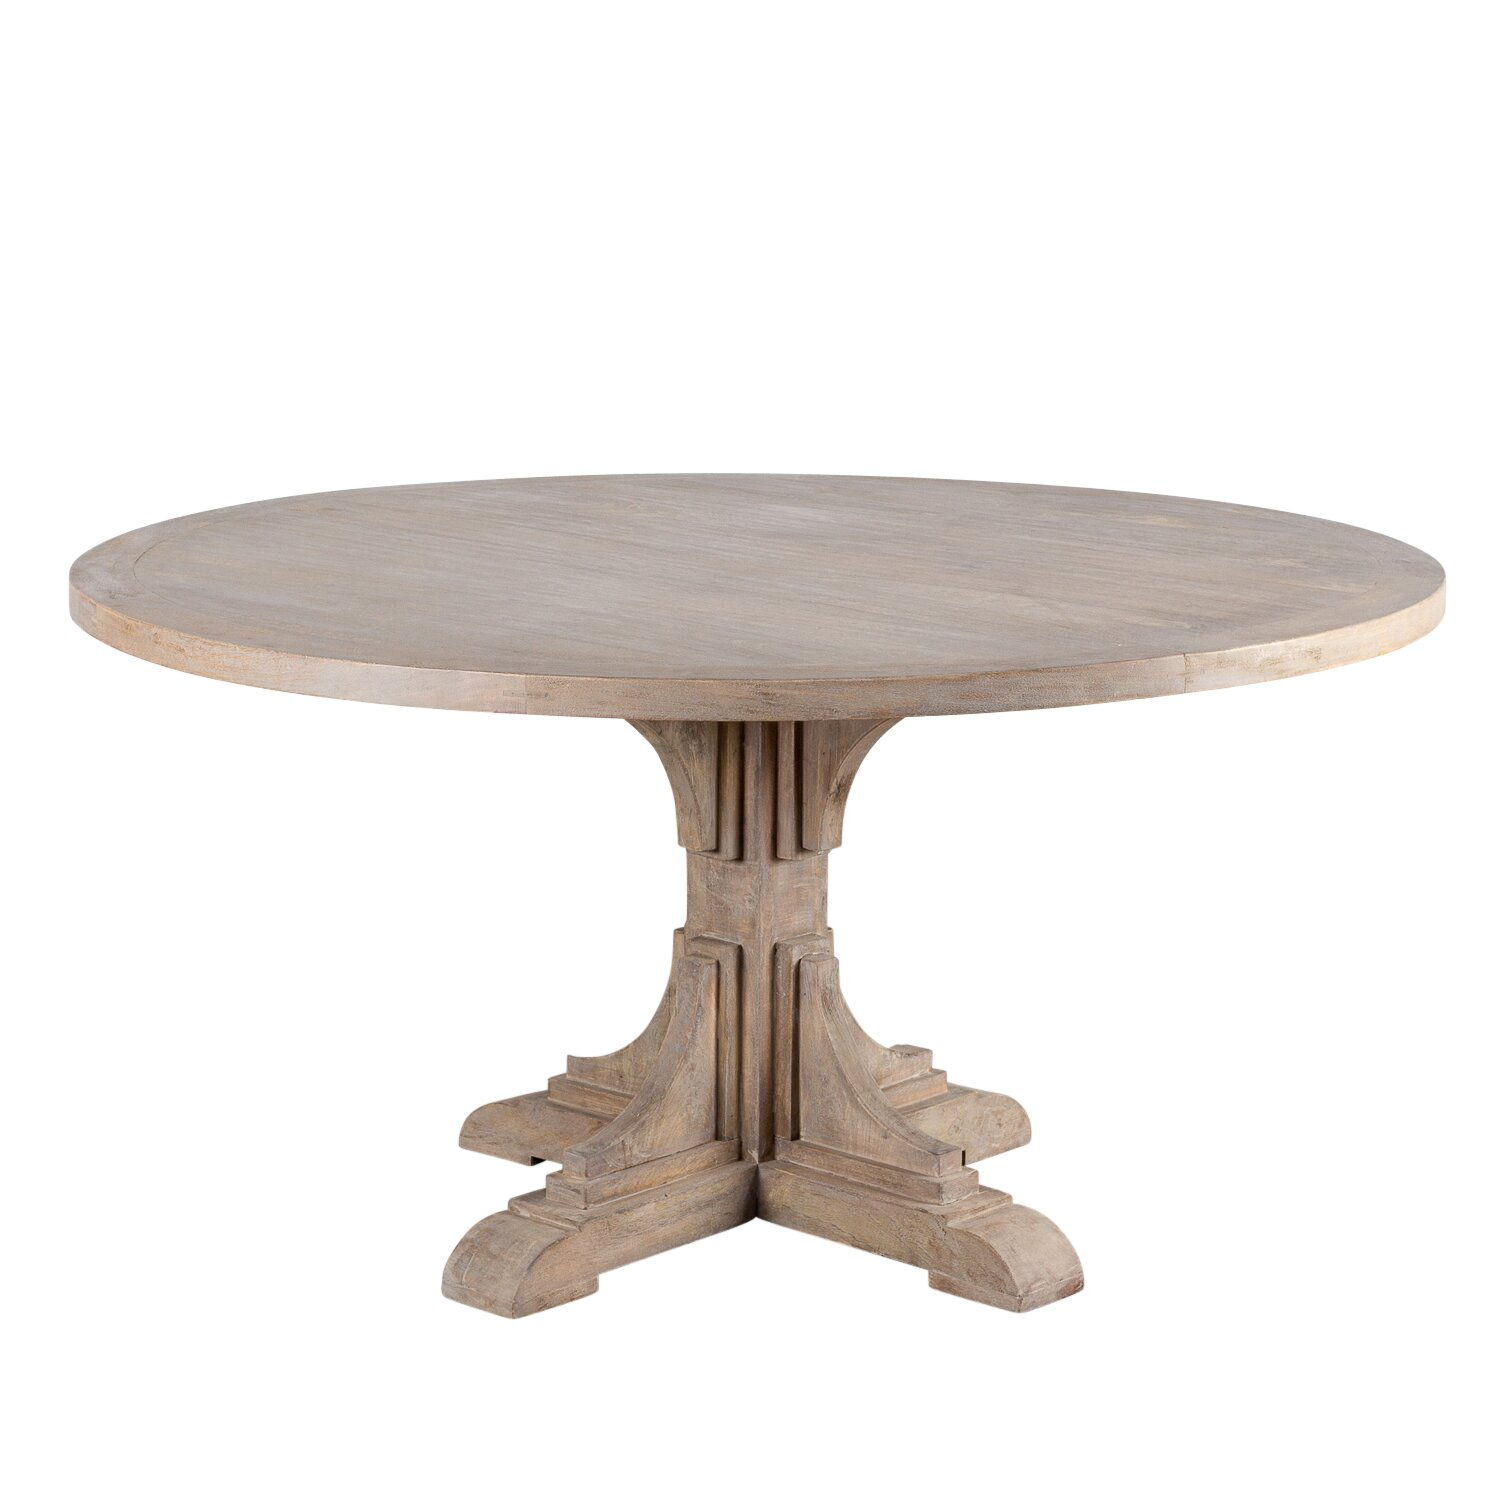 Wildon home marie round dining table reviews wayfair for Wayfair furniture dining tables